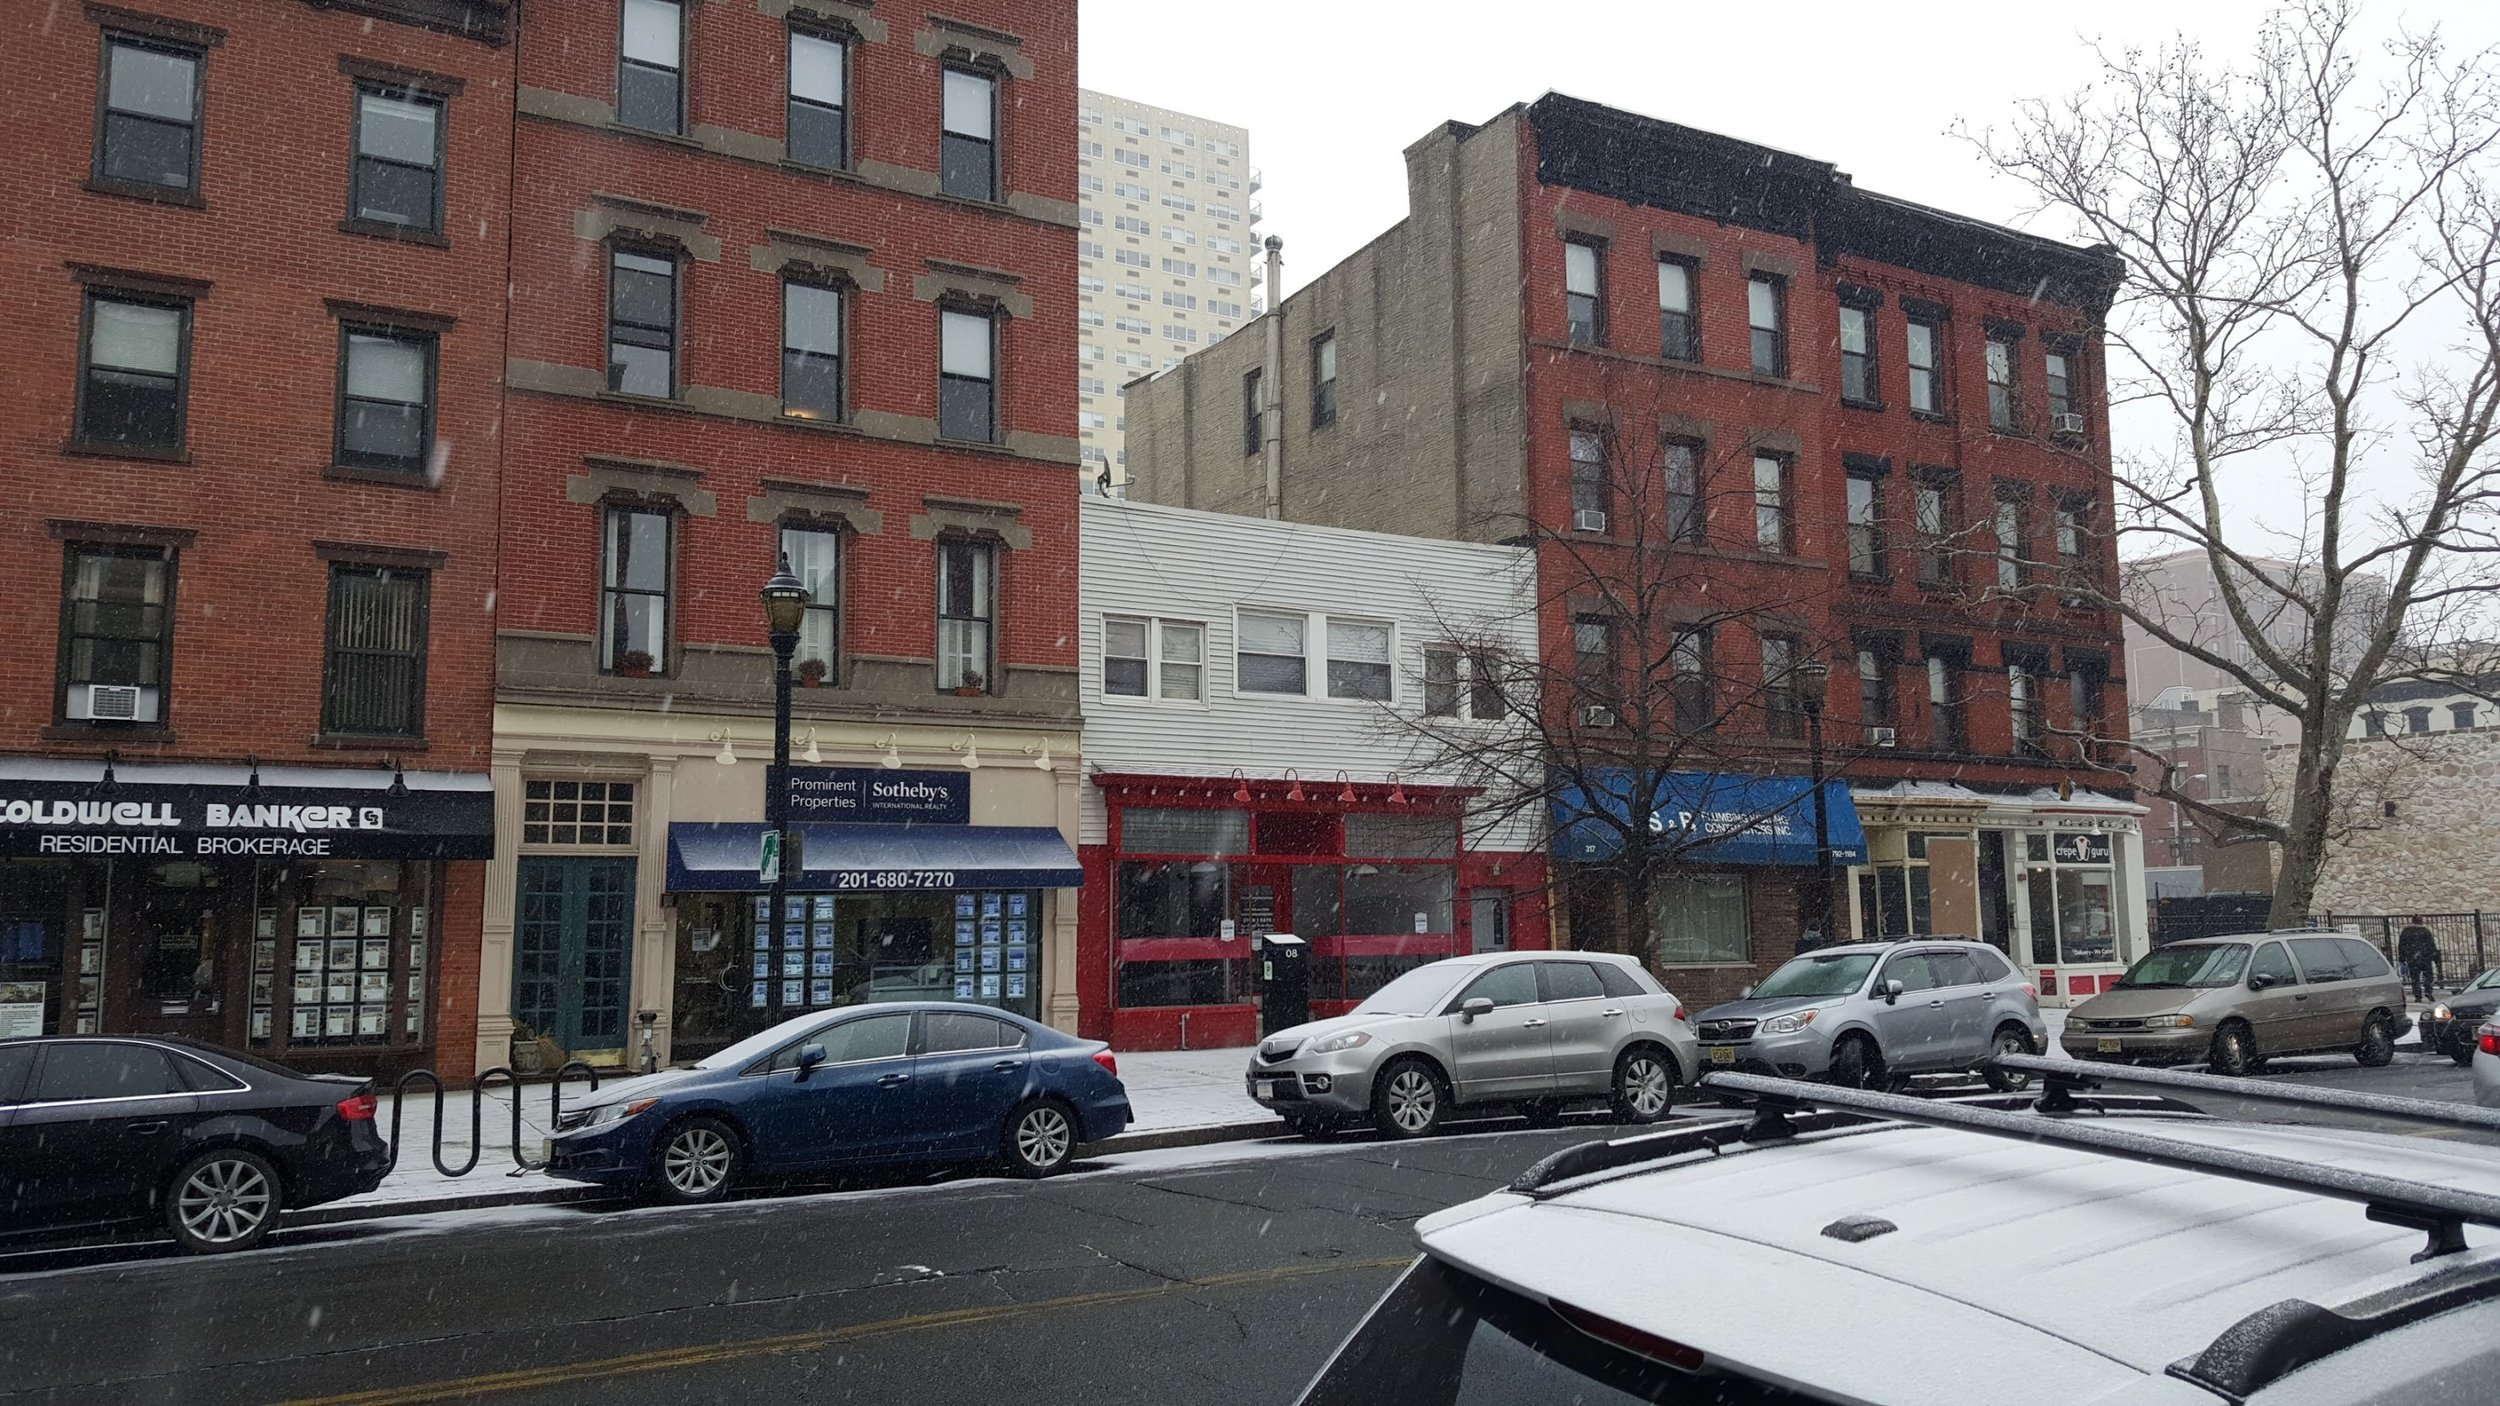 Cars lined up in front of stores in Hoboken, NJ. You can fit in perhaps one parking space per store. Ample room if treated as a loading bay, but certainly not enough to fill your business with visitors.